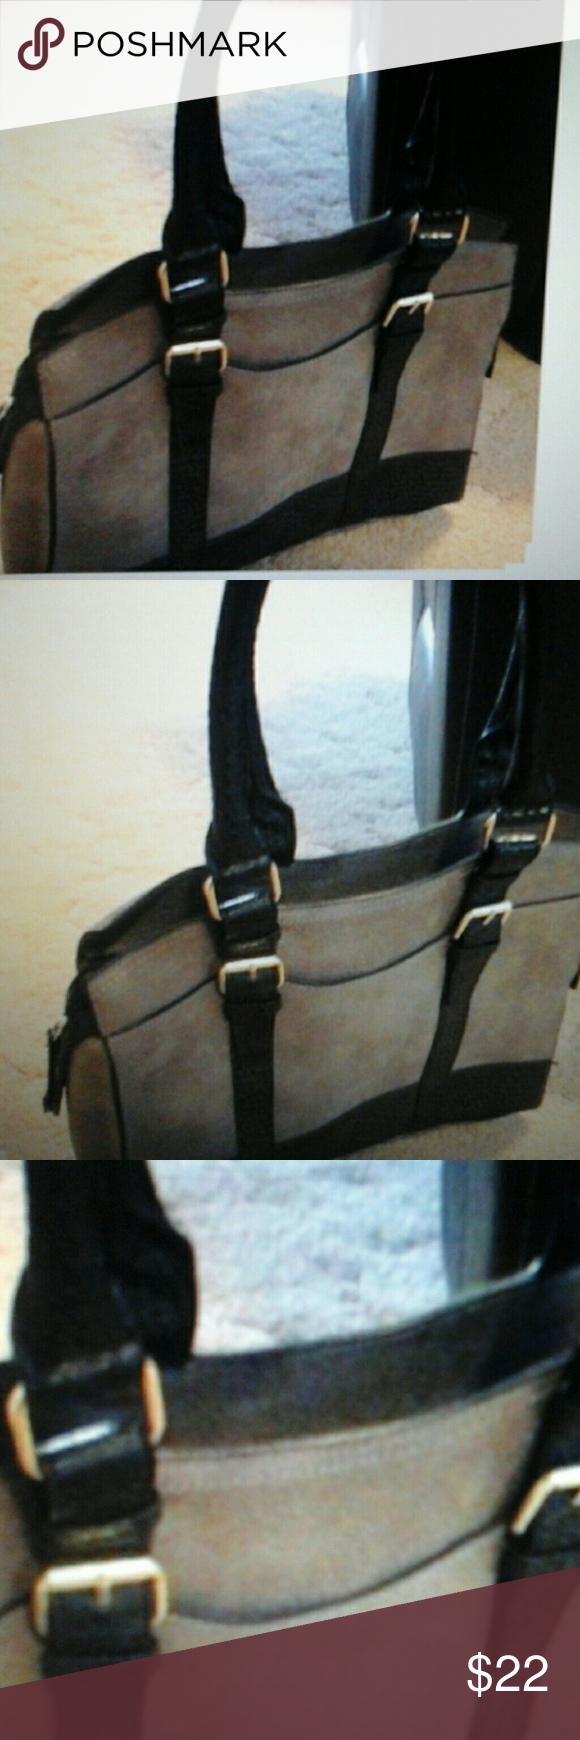 Bueno Leather Purse  Buckle Straps In great condition.  LIGHT BROWN  AND BLACK LEATHER Bags Shoulder Bags